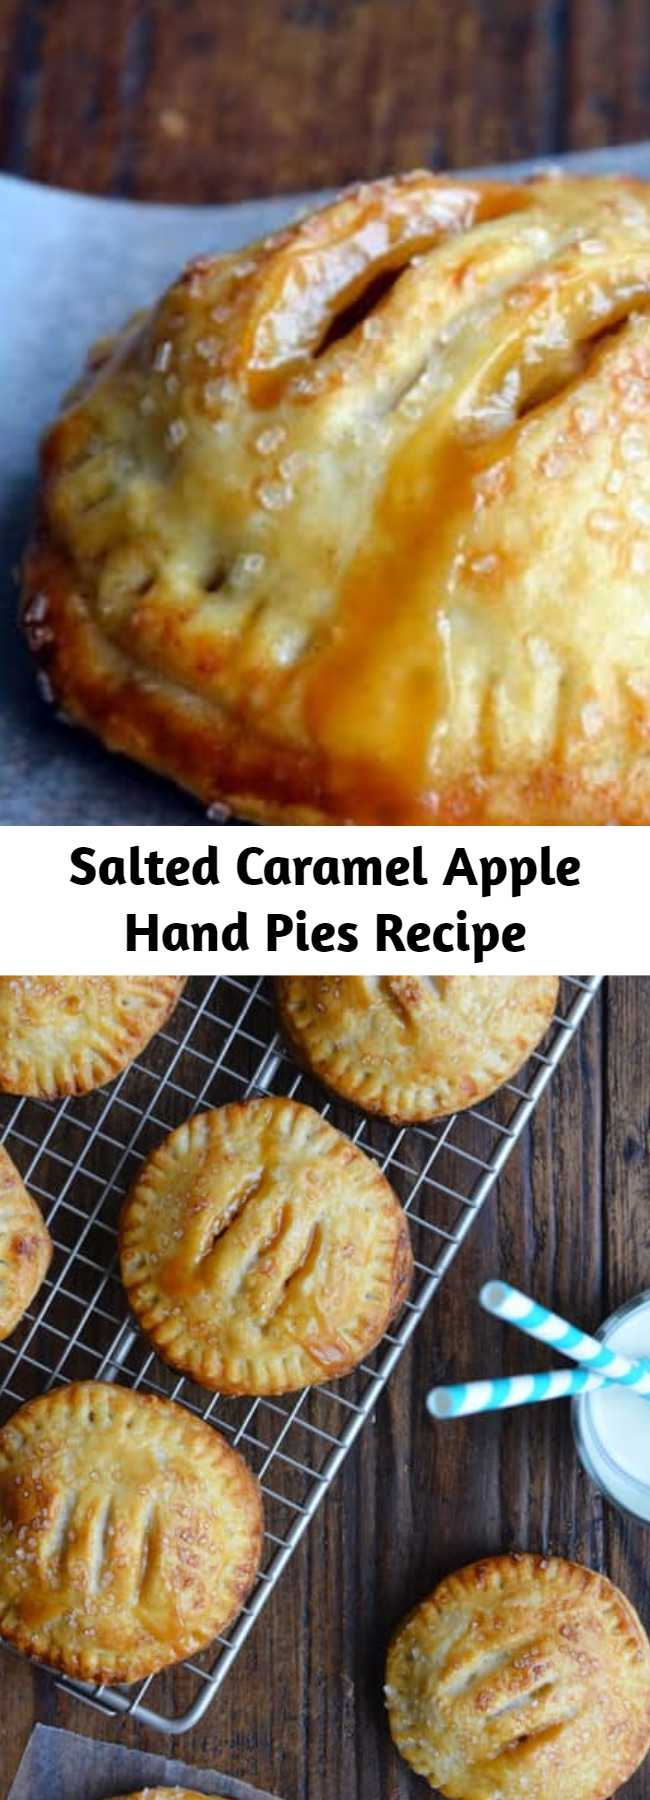 Salted Caramel Apple Hand Pies Recipe - A pinch of sea salt lends a savory balance to these handheld treats that ooze fresh fruit flavor and silky smooth caramel. It's the dynamic dessert duo, and it's all wrapped up in finger-friendly package. No forks, no plates, no sharing required!